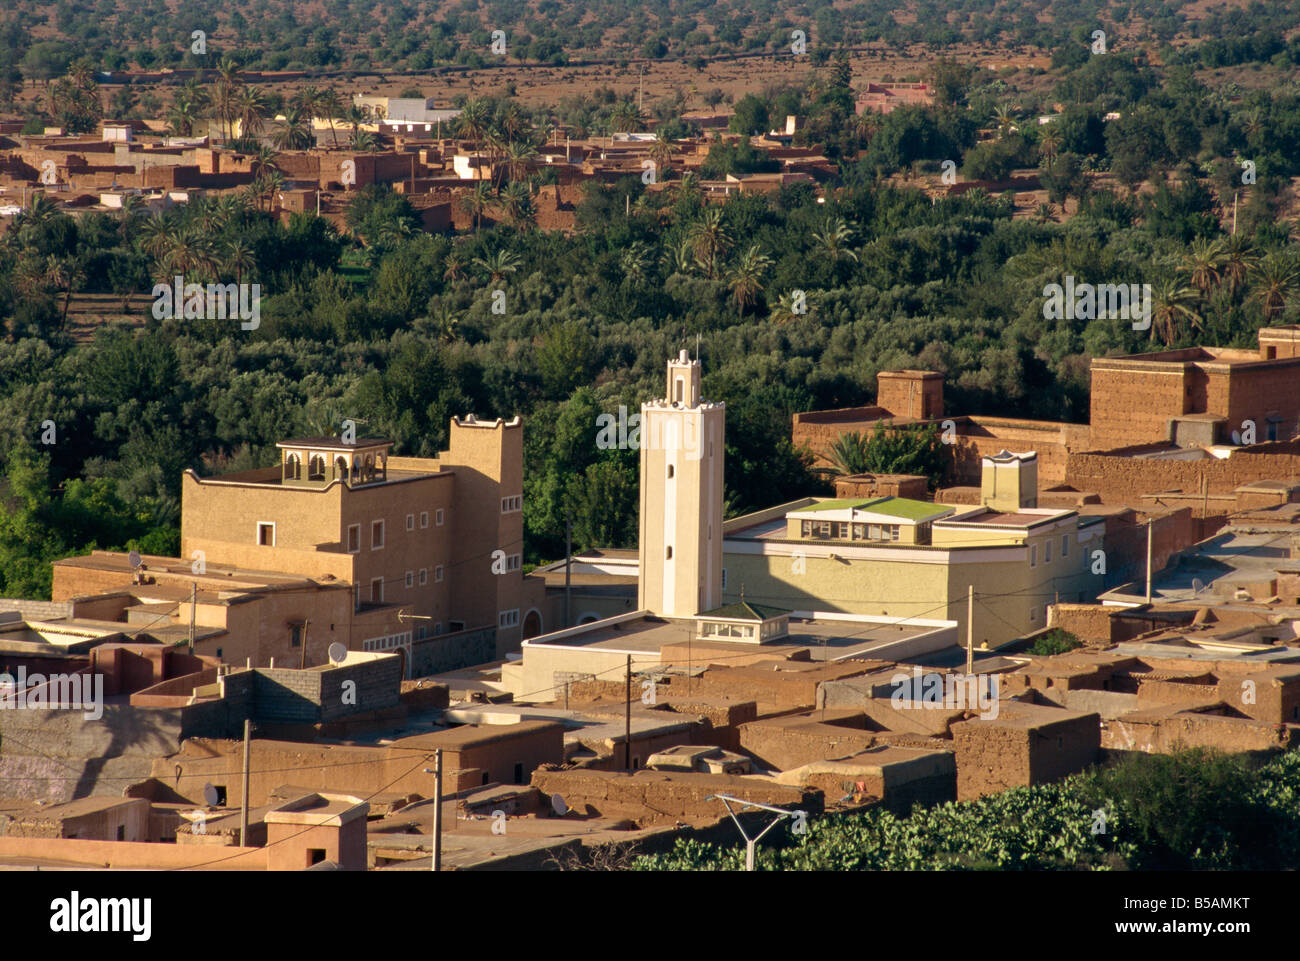 View over the small town of Tioute, with substantial palmery near Taroudant, Morocco, North Africa, Africa - Stock Image